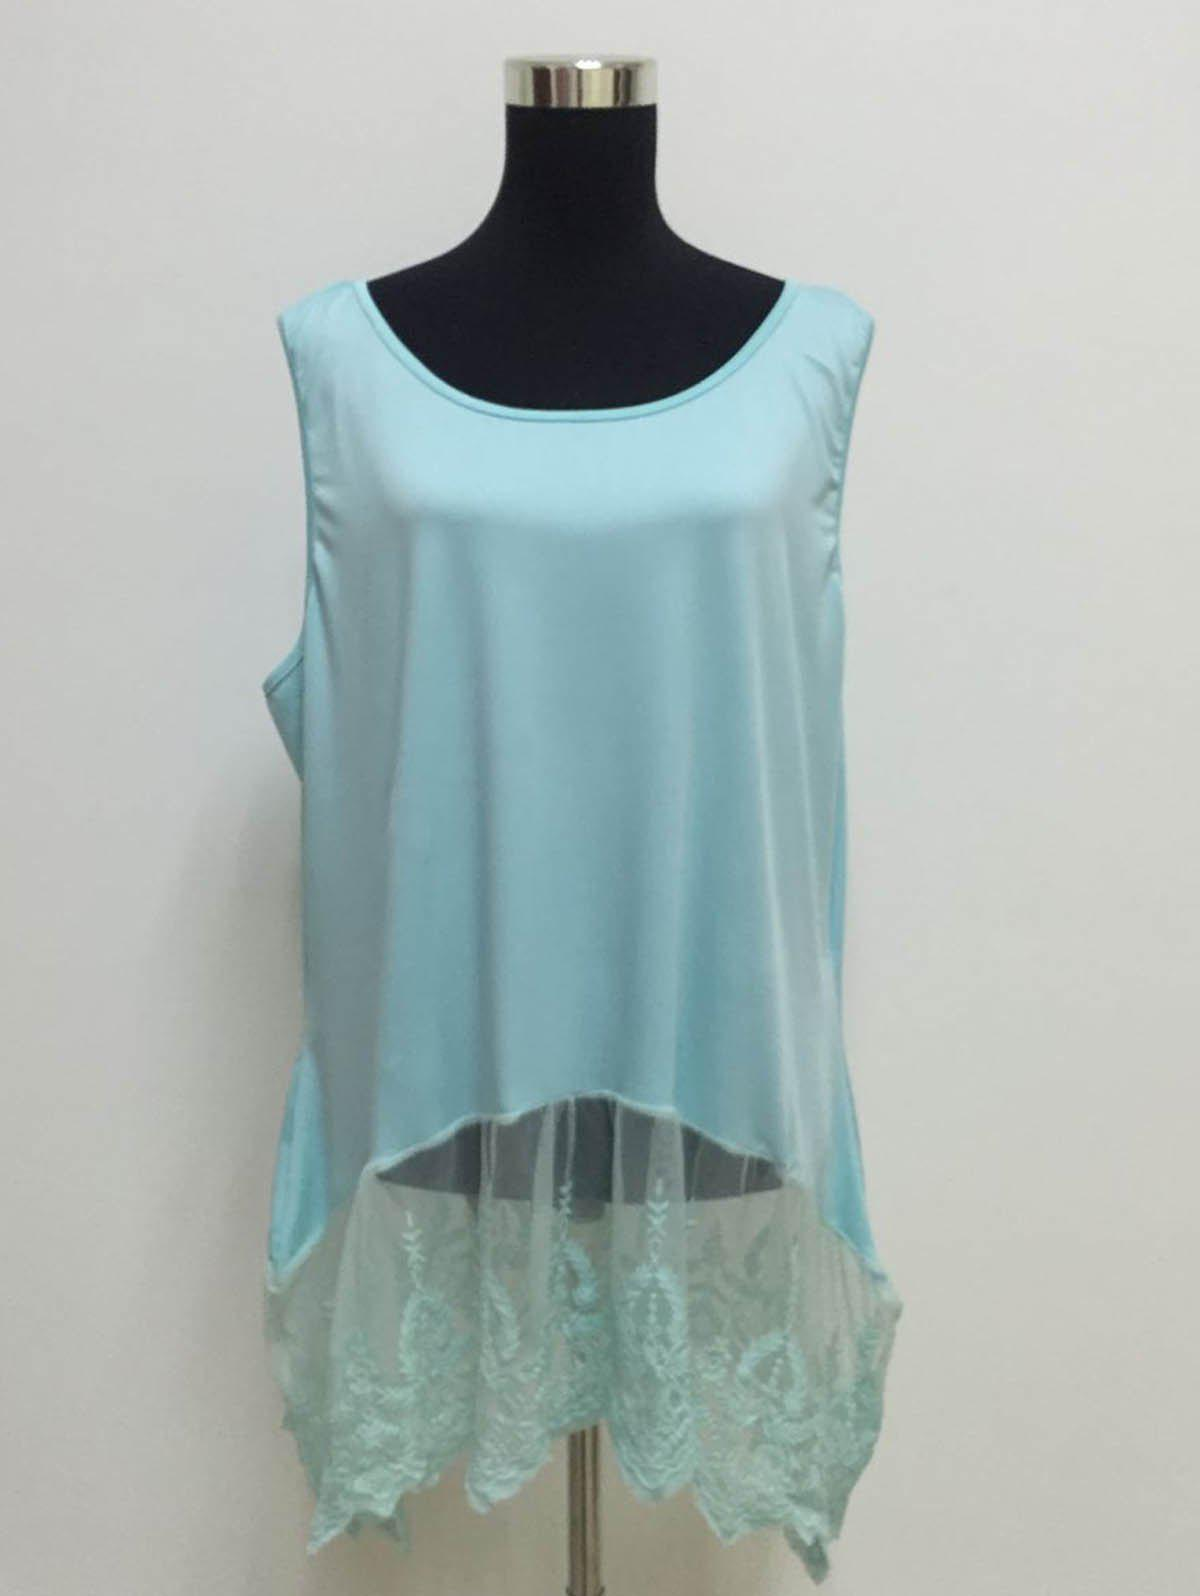 Elegant Women's Scoop Neck Sleeveless Lace Splicing Pus Size Top - AZURE XL